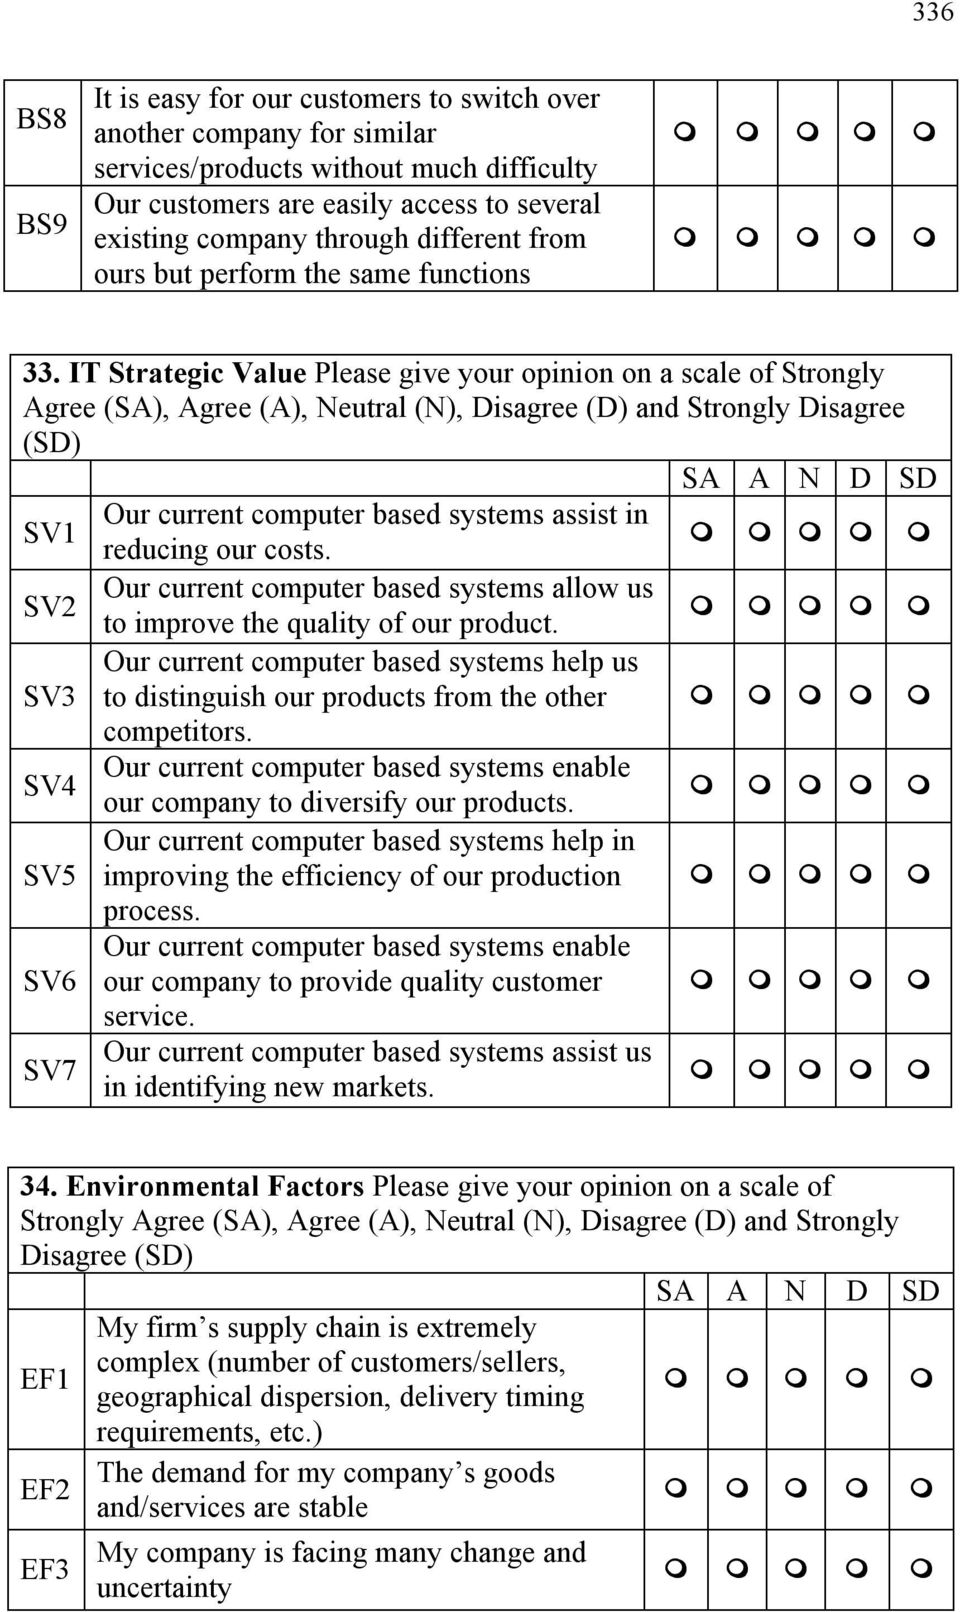 IT Strategic Value Please give your opinion on a scale of Strongly Agree (SA), Agree (A), Neutral (N), Disagree (D) and Strongly Disagree (SD) Our current computer based systems assist in SV1